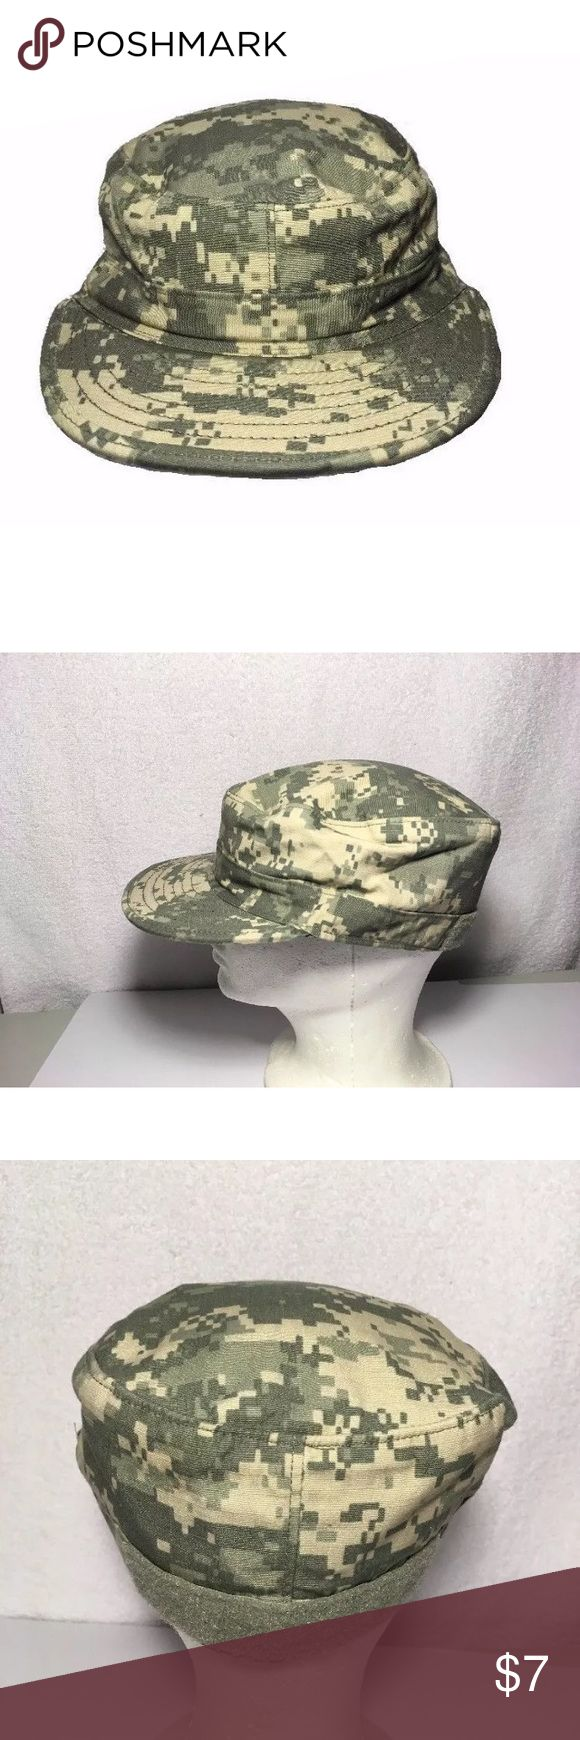 US Military Issue Army ACU Camo Patrol Cap Size 7 GI issue US Army patrol cap in digital style camo pattern. Made by SEKRI Industries. Back of hat has attachment area for name tape or cat eyes. Size 7 fitted Accessories Hats